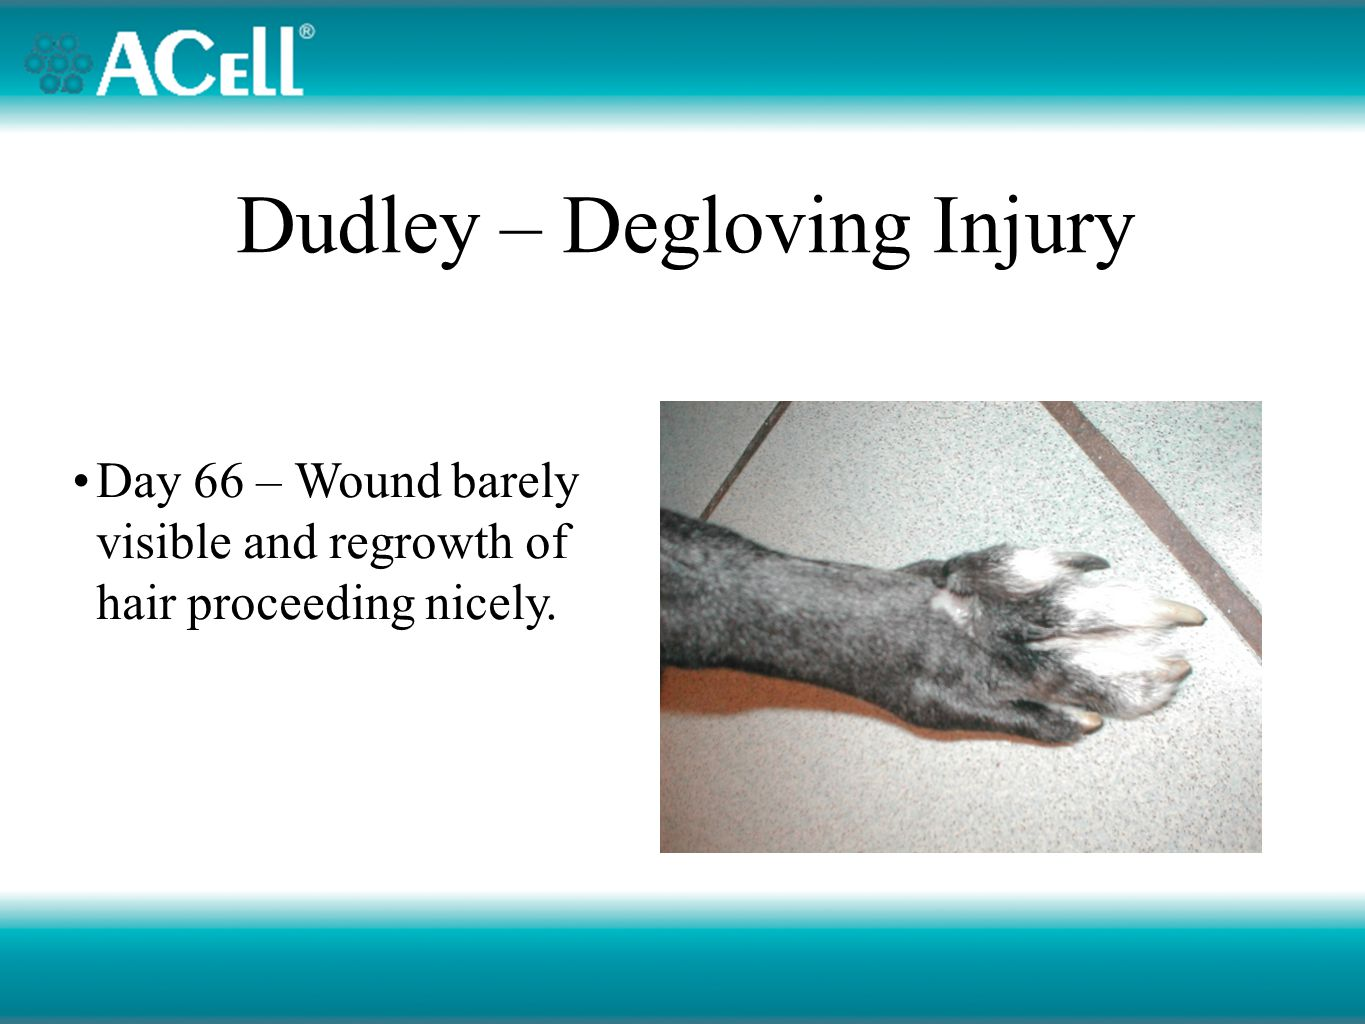 Dudley – Degloving Injury Day 66 – Wound barely visible and regrowth of hair proceeding nicely.